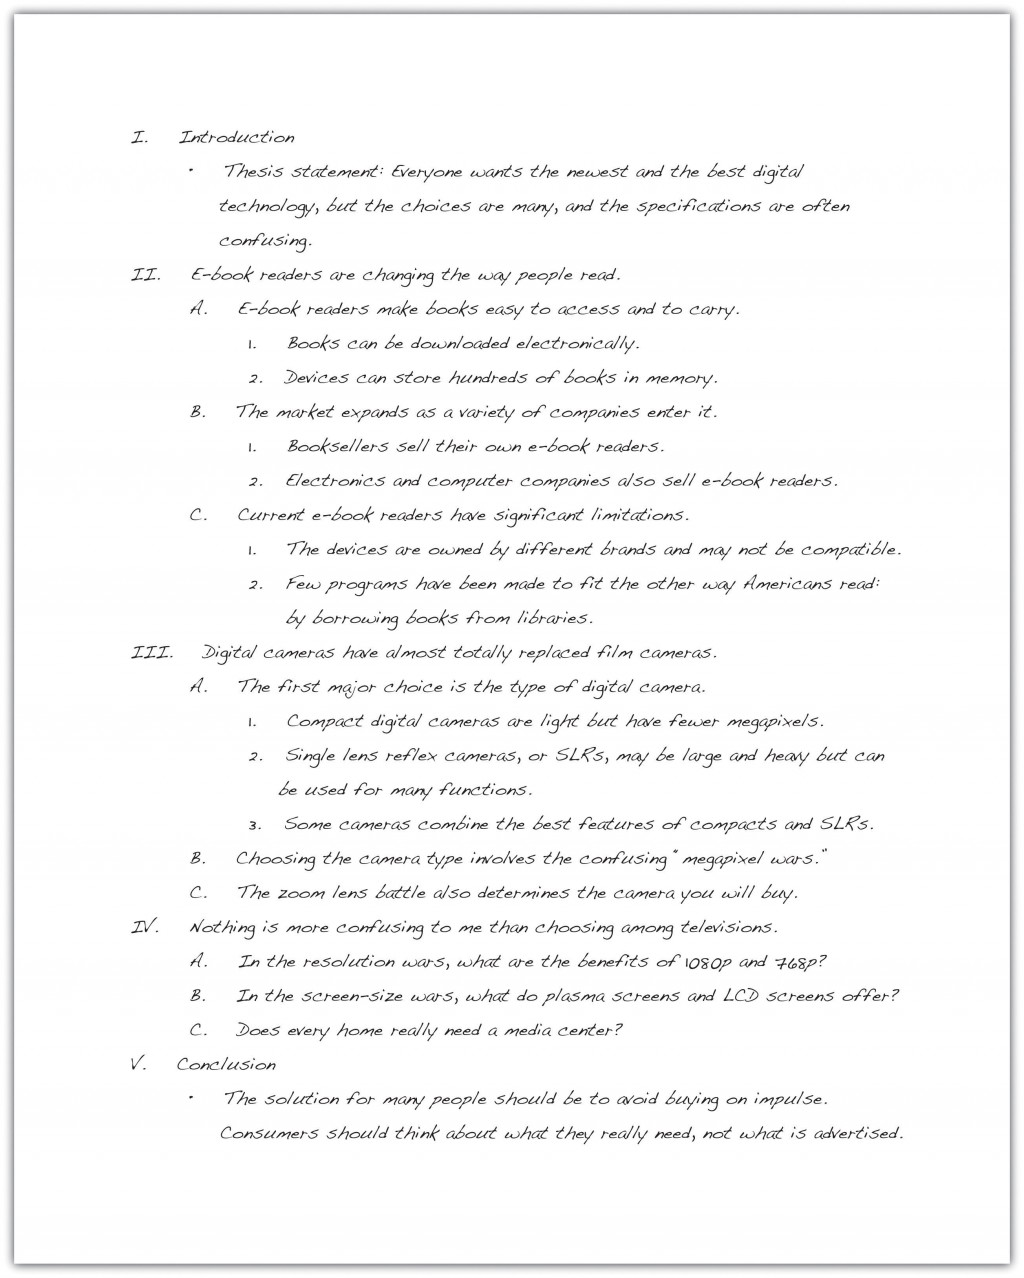 006 Essay Example How Many Sentencesre In Best Sentences Are A Much Make Paragraph An 250 Word Large